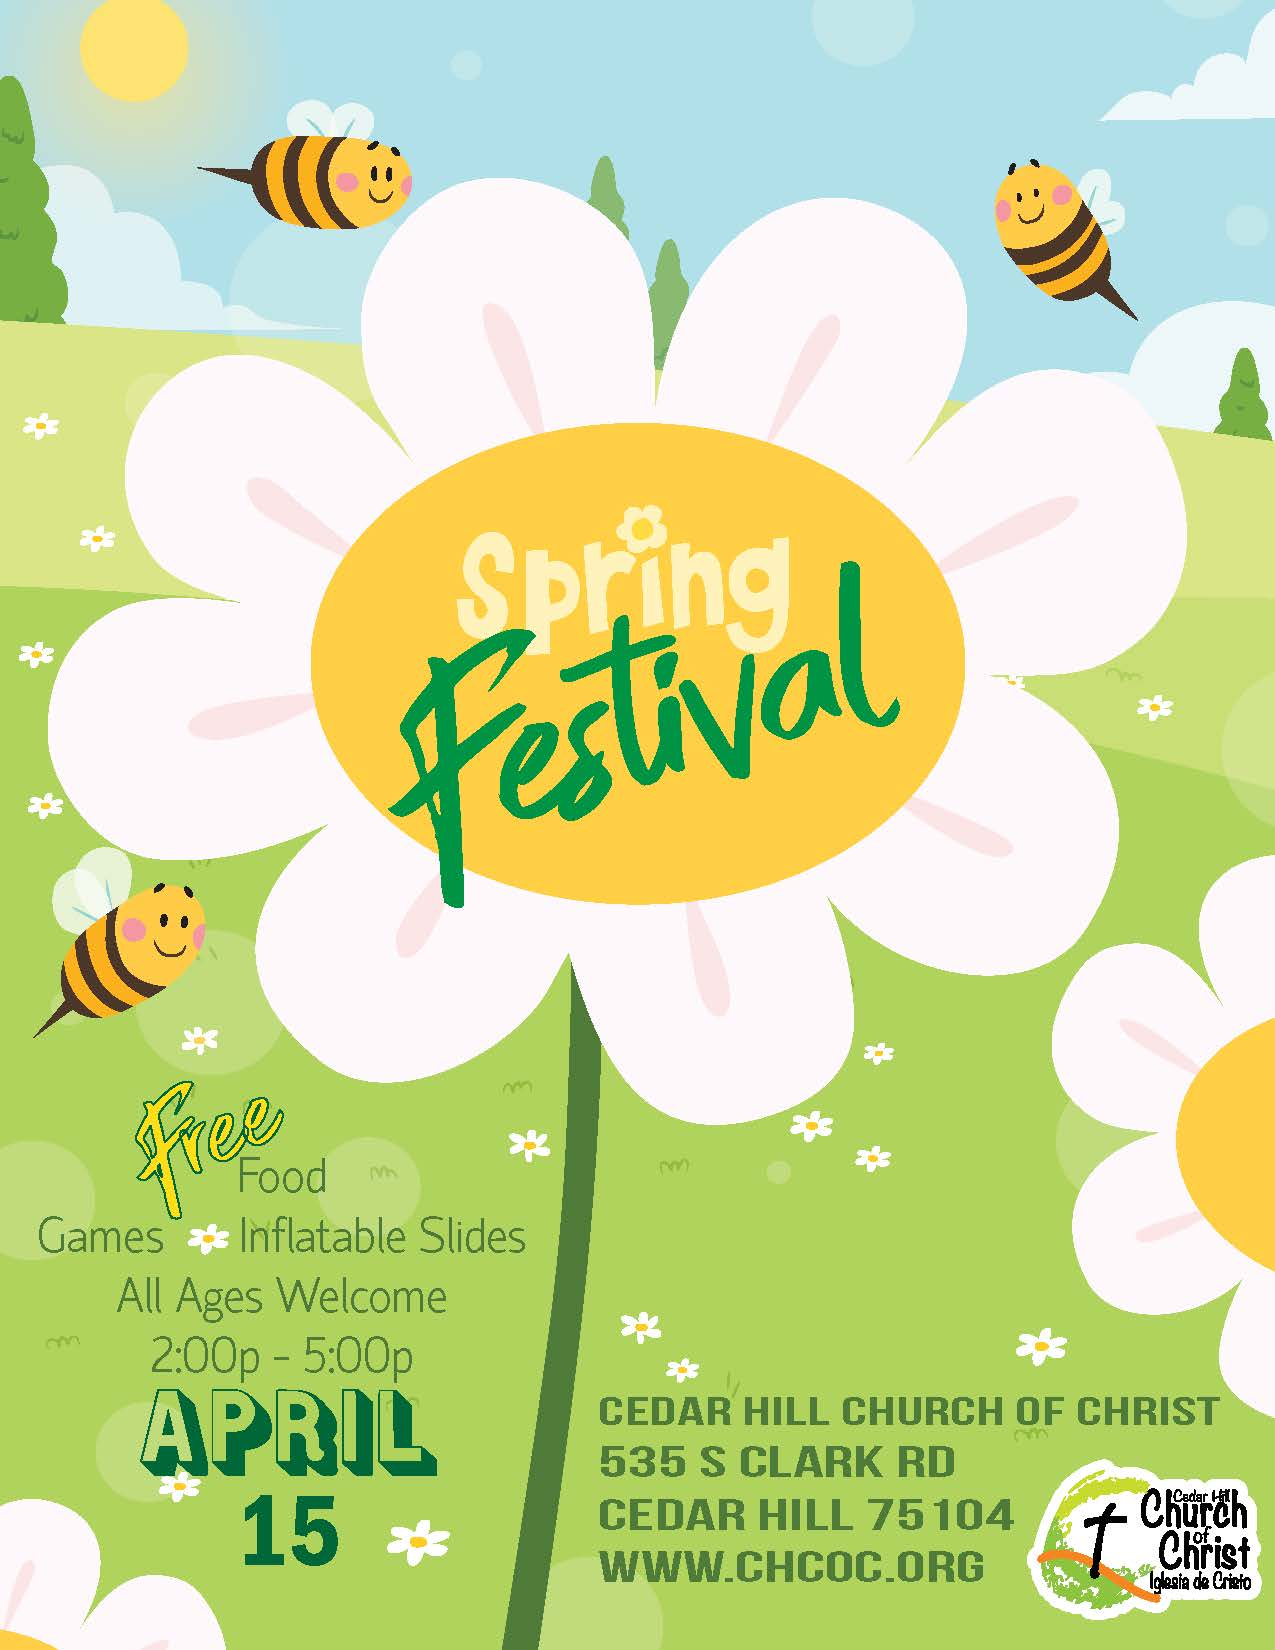 CH Church of Christ Spring Festival Flyer